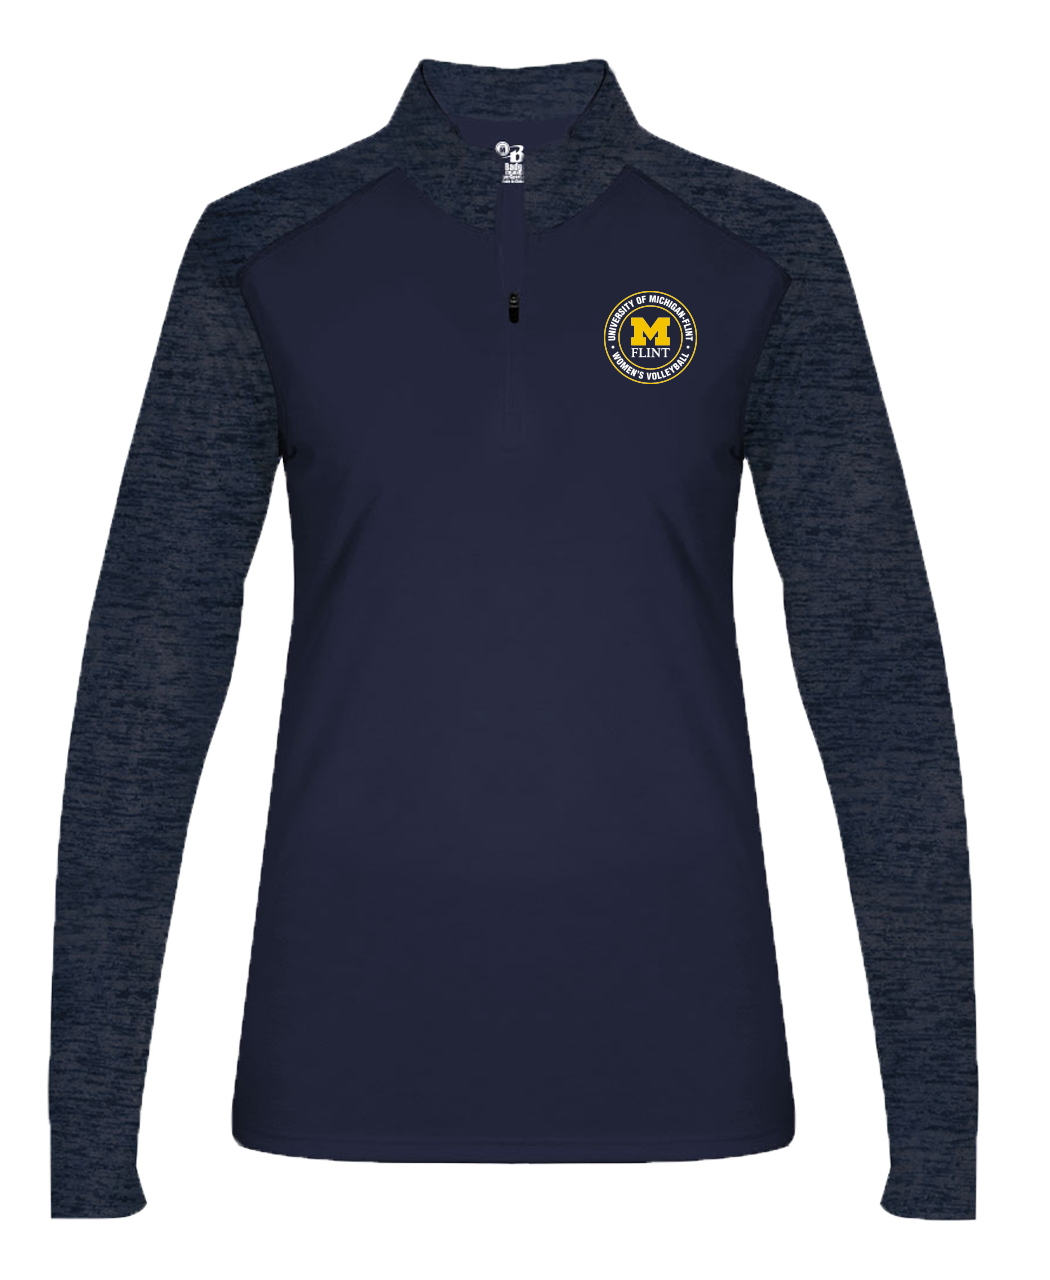 UofM Flint Circle Design Navy Ladies 1/4 Zip